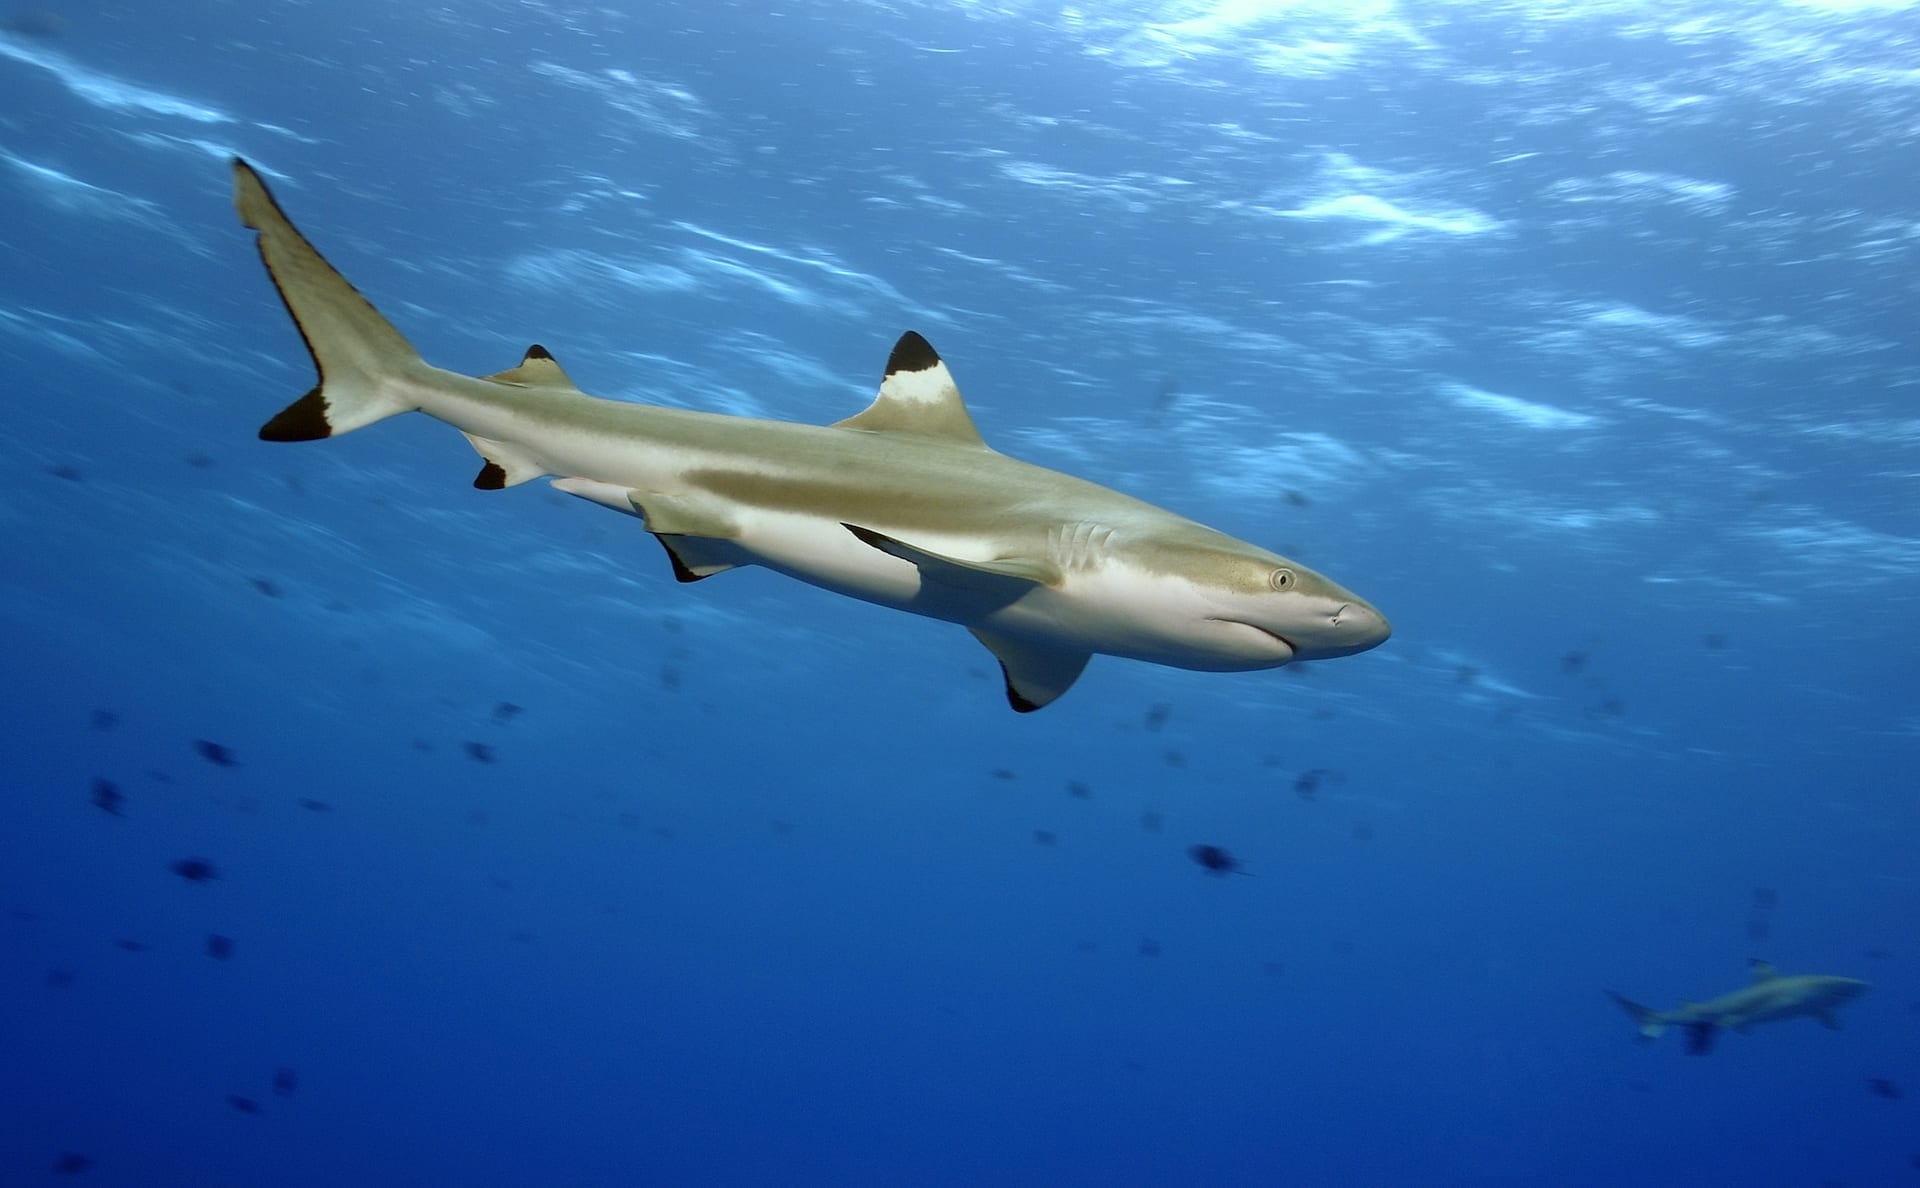 The blacktip reef shark is a regular catch of coastal fisheries, such as those operating off Thailand and India, but is not targeted or considered commercially important. Photo: Yann hubert/Shutterstock